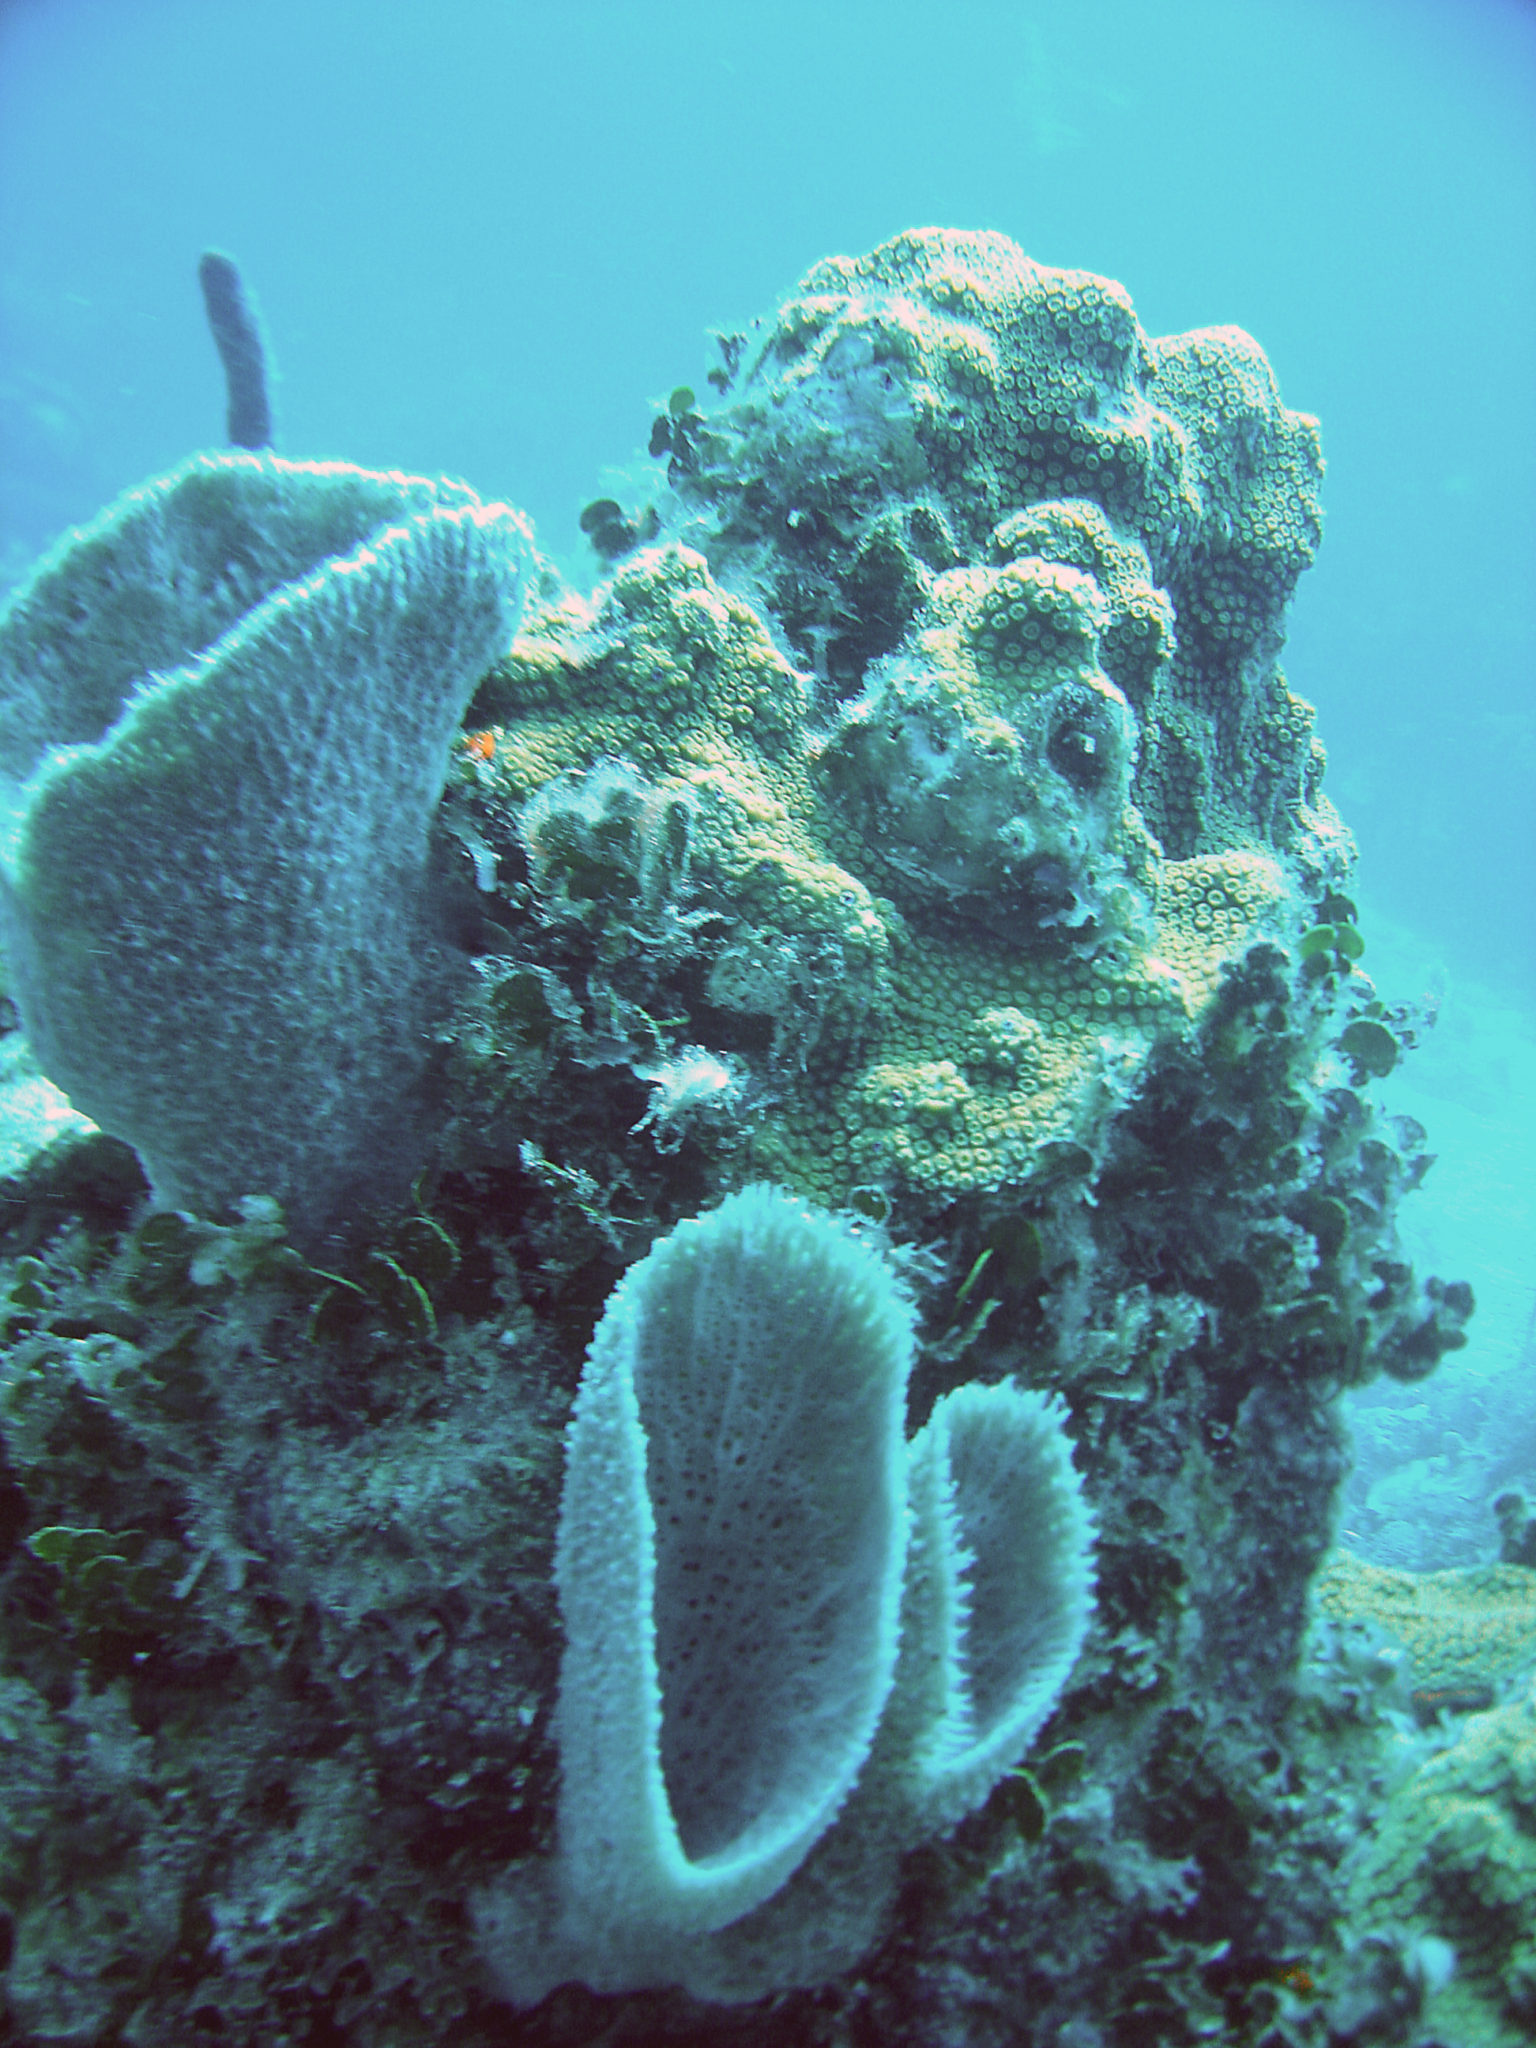 Republique_dominicaine_roadtrip_bayahibe_plongee_scubafun_coral_dominicus_reef